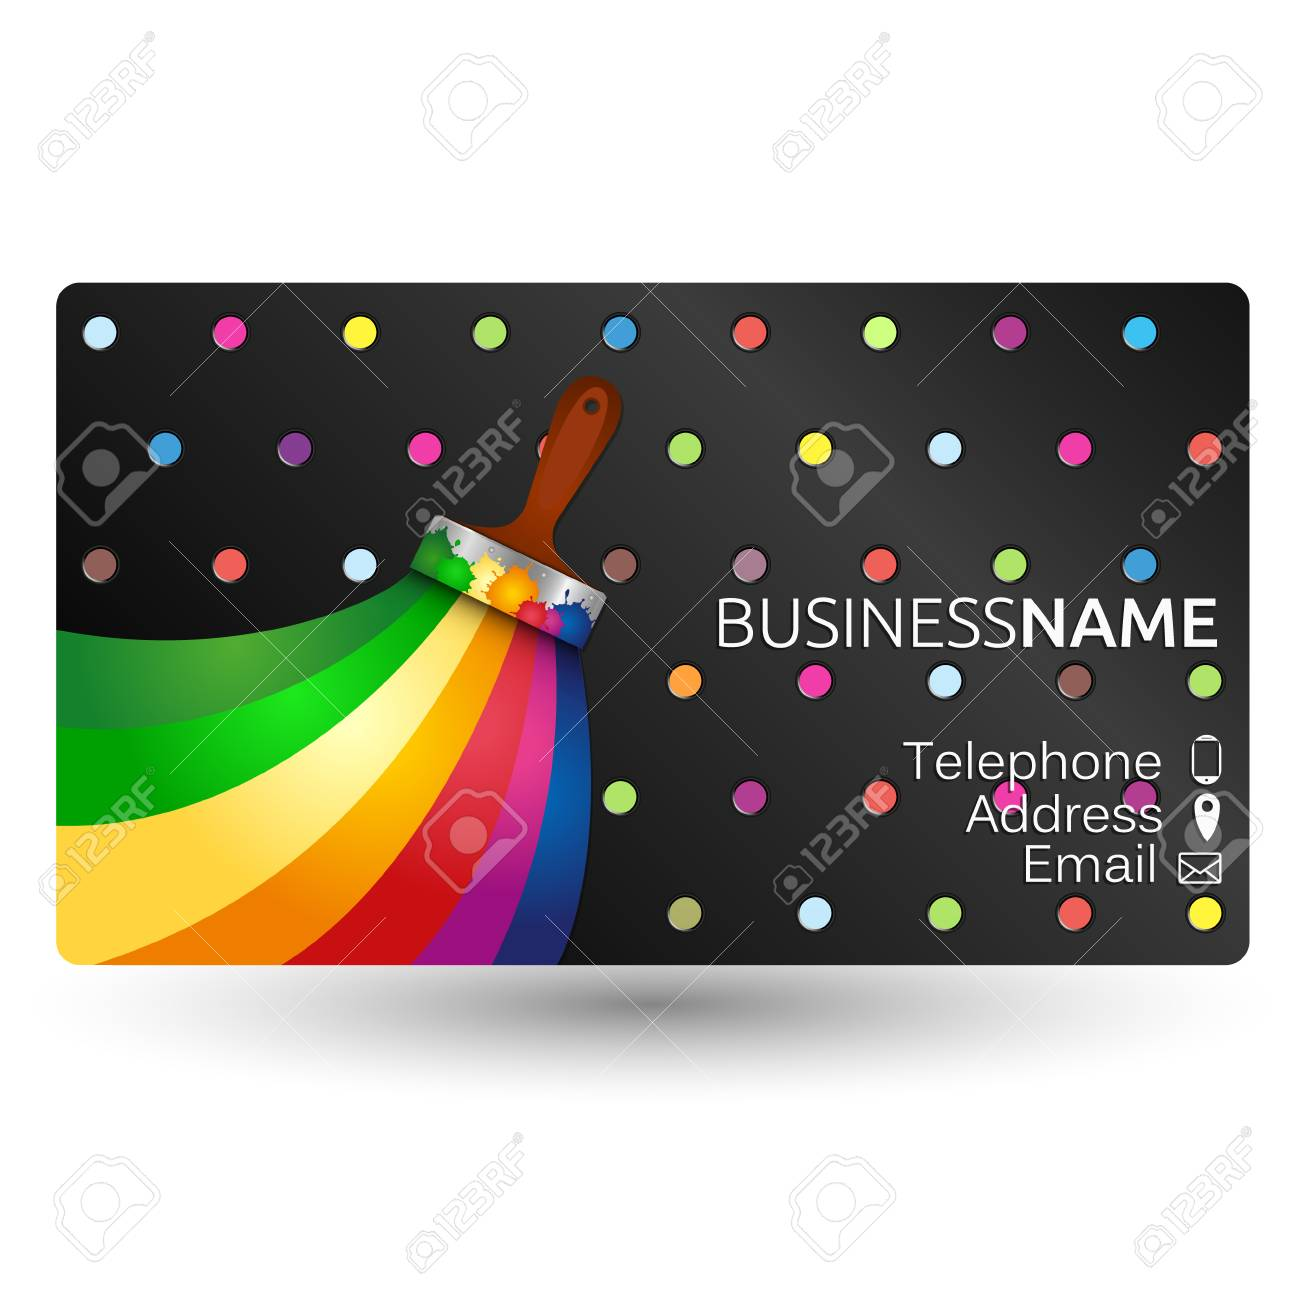 painting business card concept vector stock vector 73049206 - Painting Business Cards